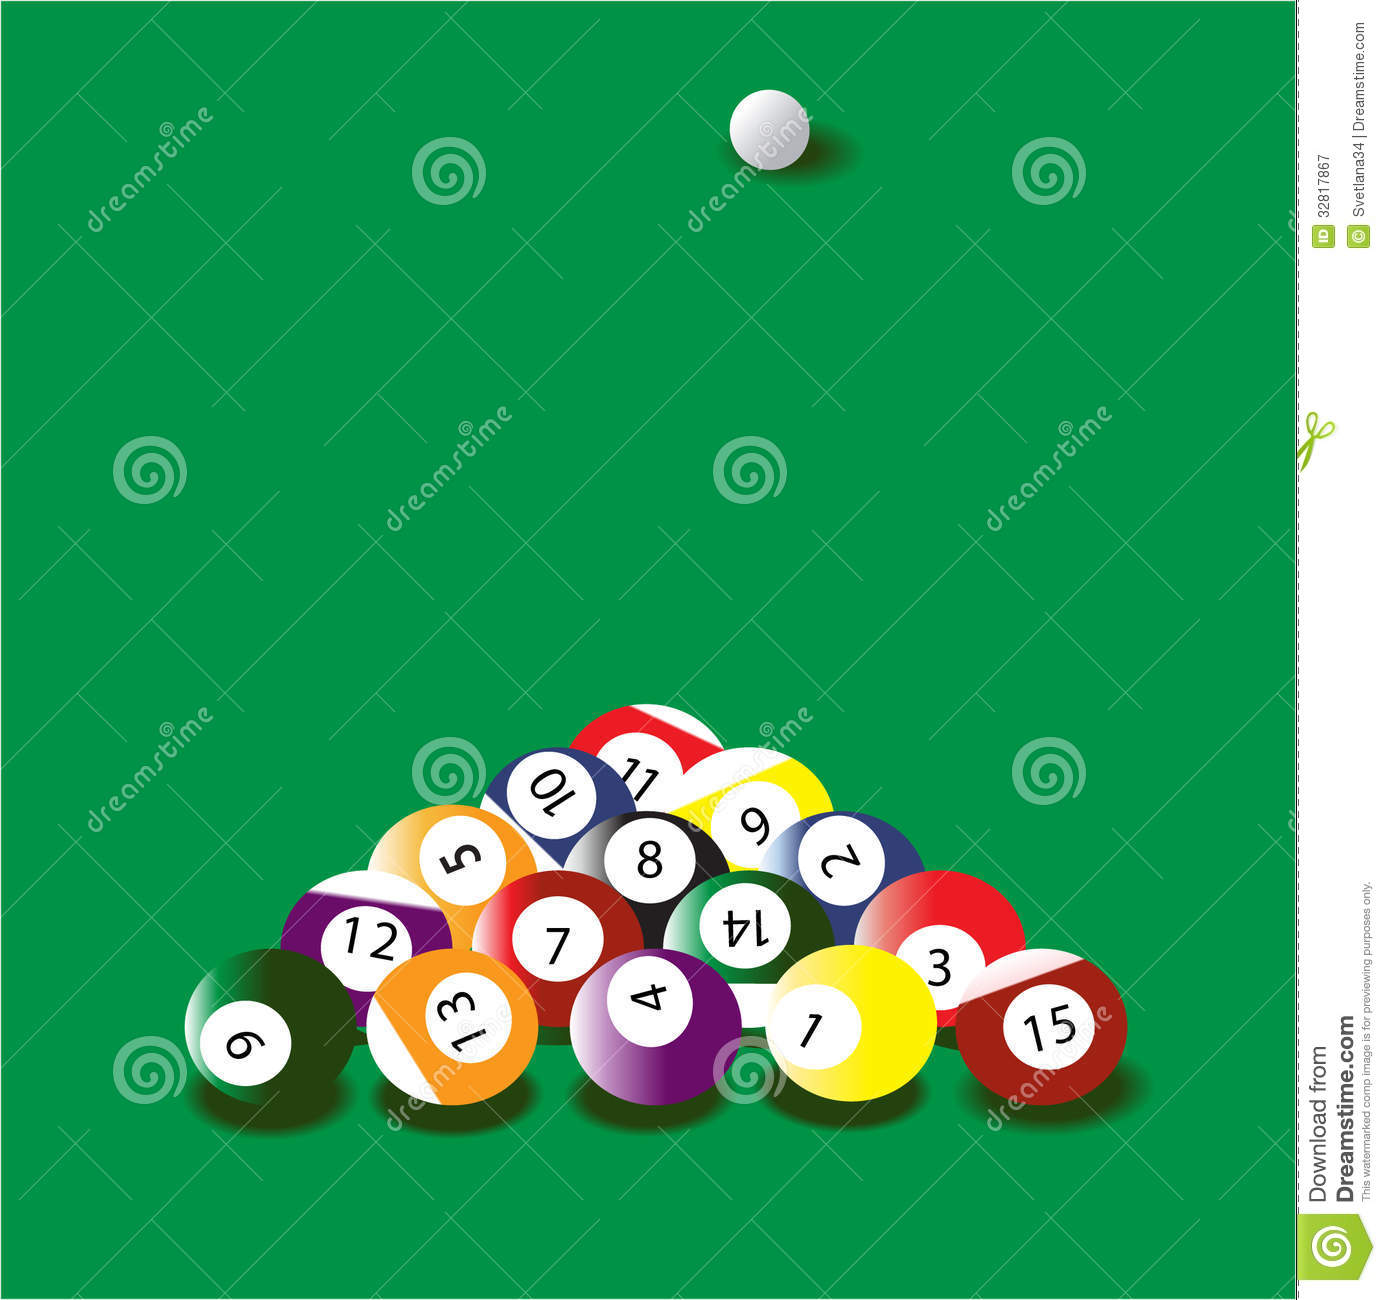 Displaying 15> Images For - Billiard Table Clip Art...